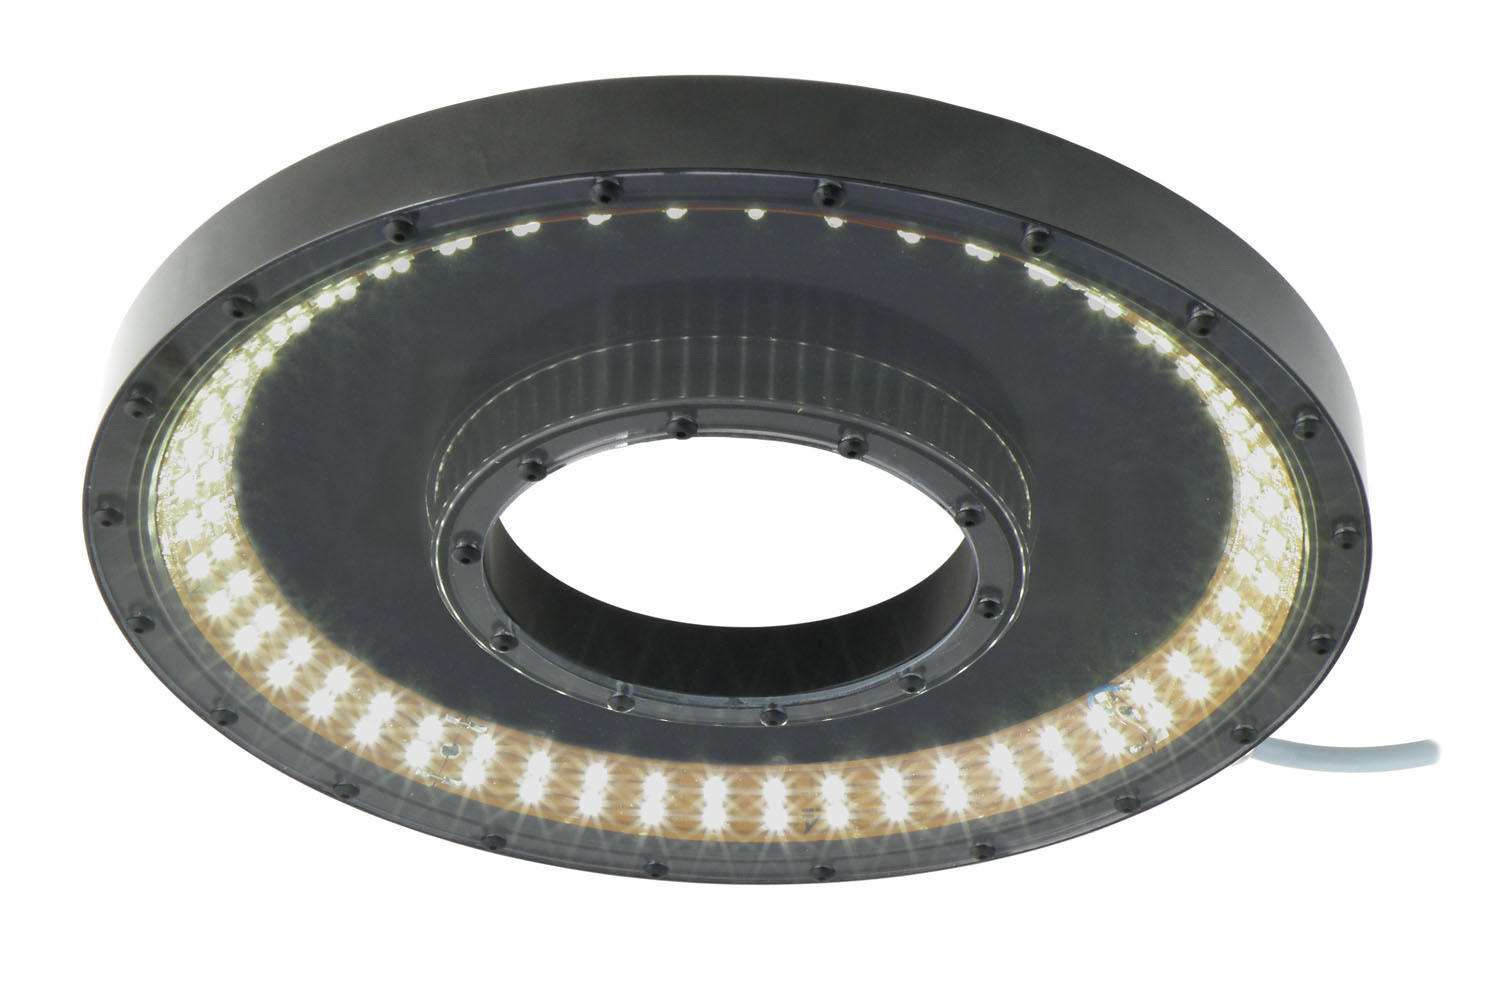 RL152 High Performance Dark Field Ring Light